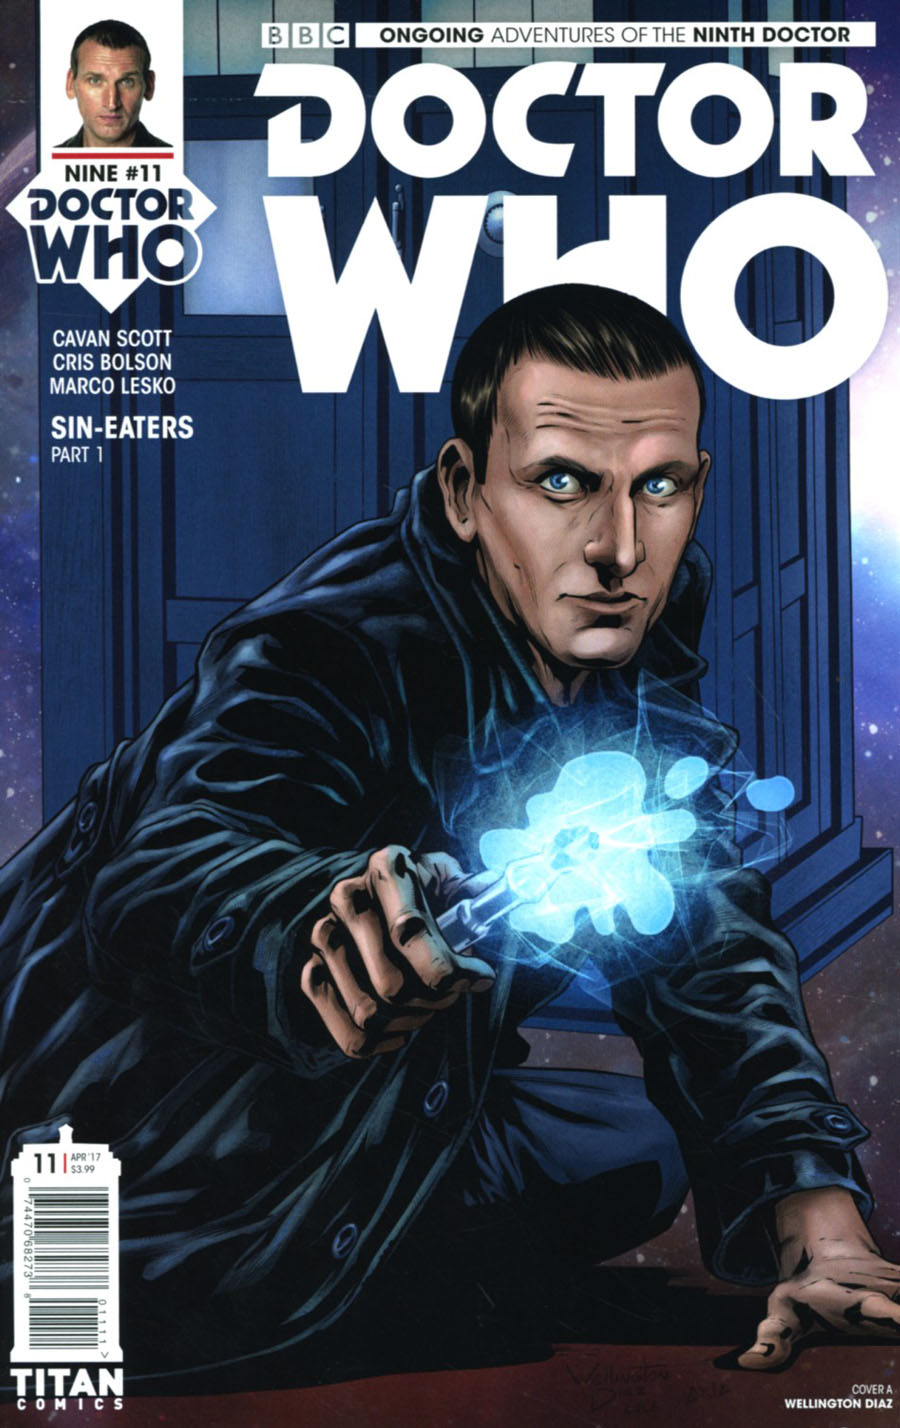 Doctor Who 9th Doctor Vol 2 #11 Cover A Regular Wellington Diaz Cover